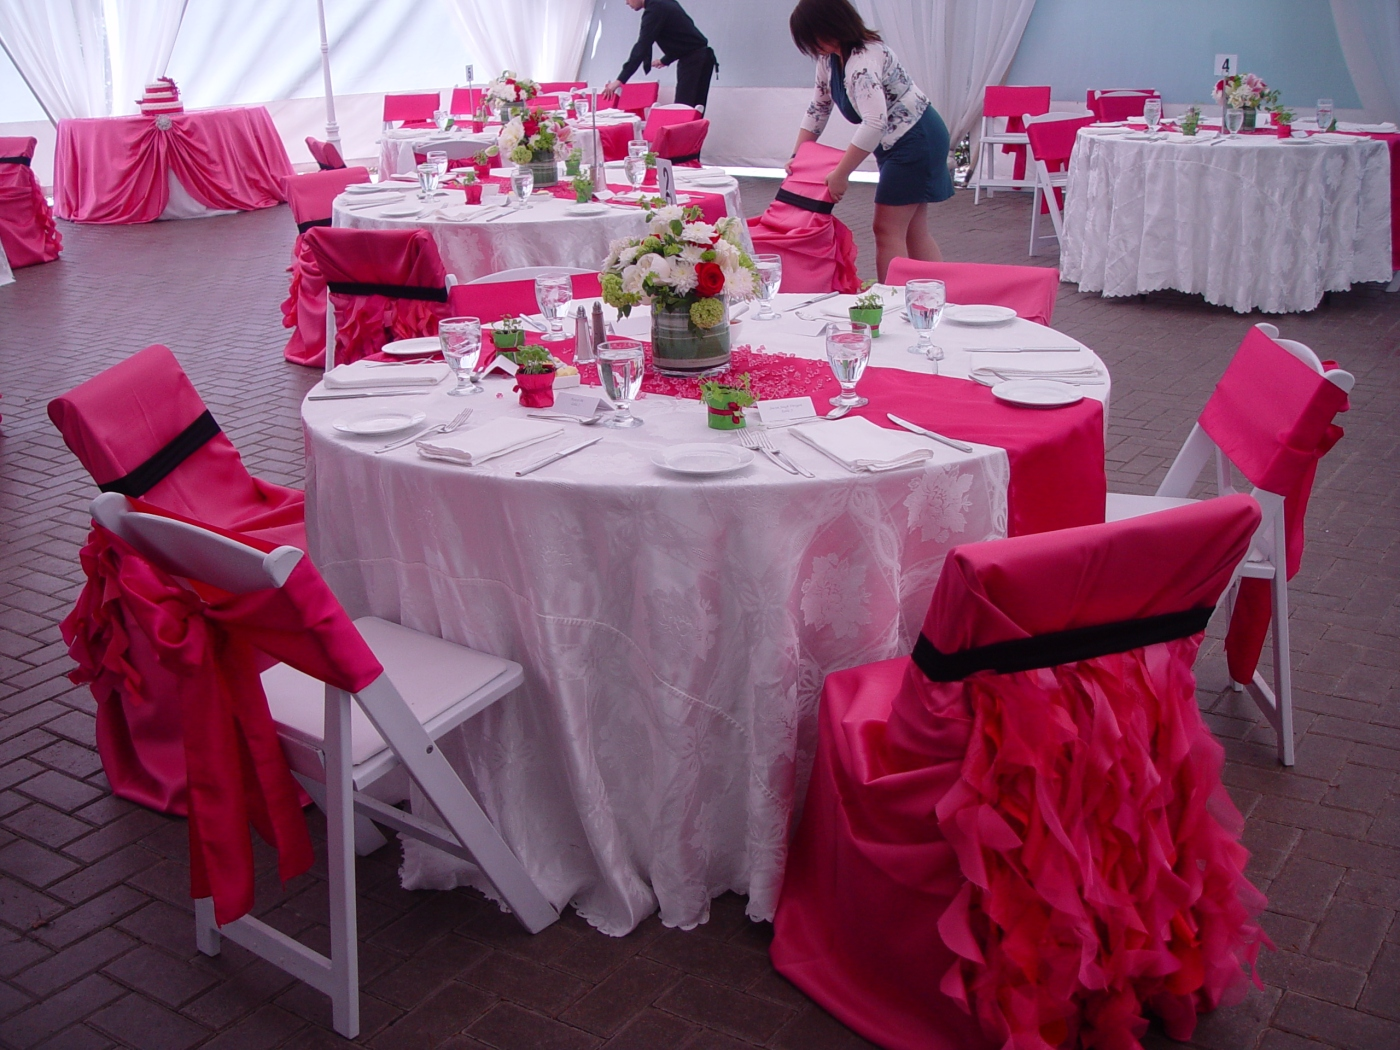 The wedding trend demand of chair covers for rent in michigan the wedding trend demand of chair covers for rent in michigan junglespirit Images